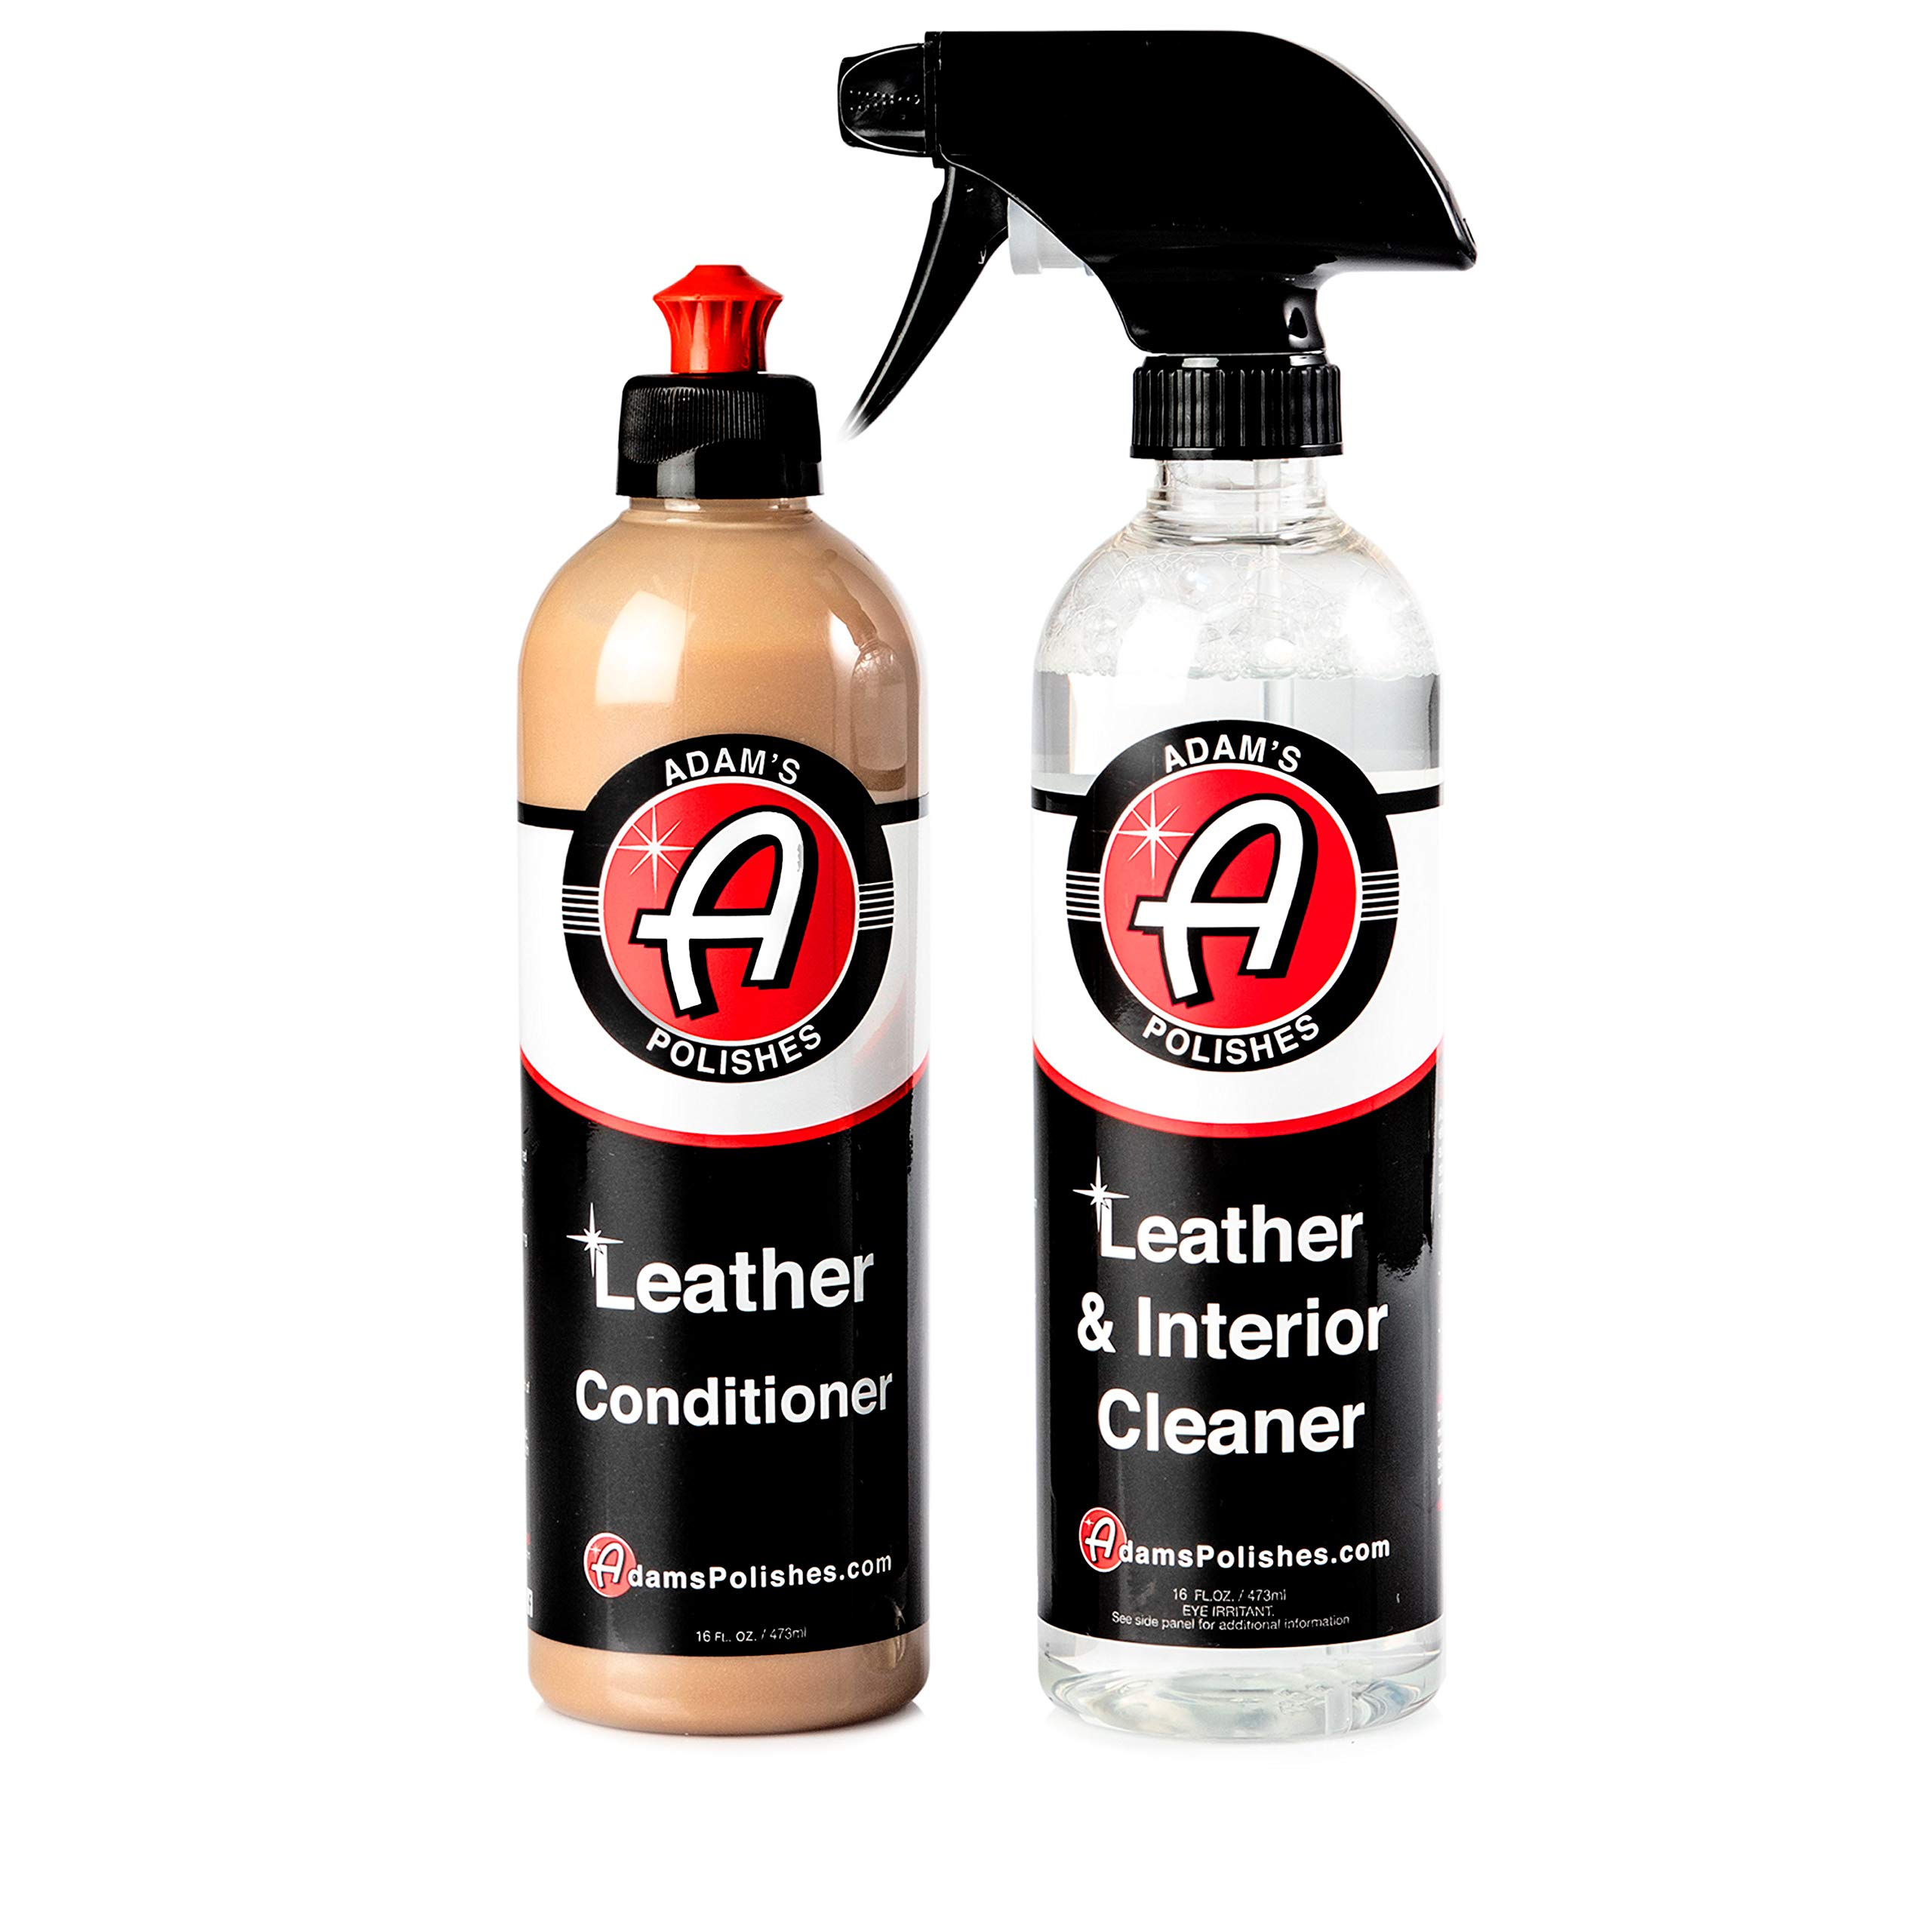 Adam's Polishes Leather Interior Cleaner & Conditioner Complete Leather Care Kit (Two Bottle Kit)